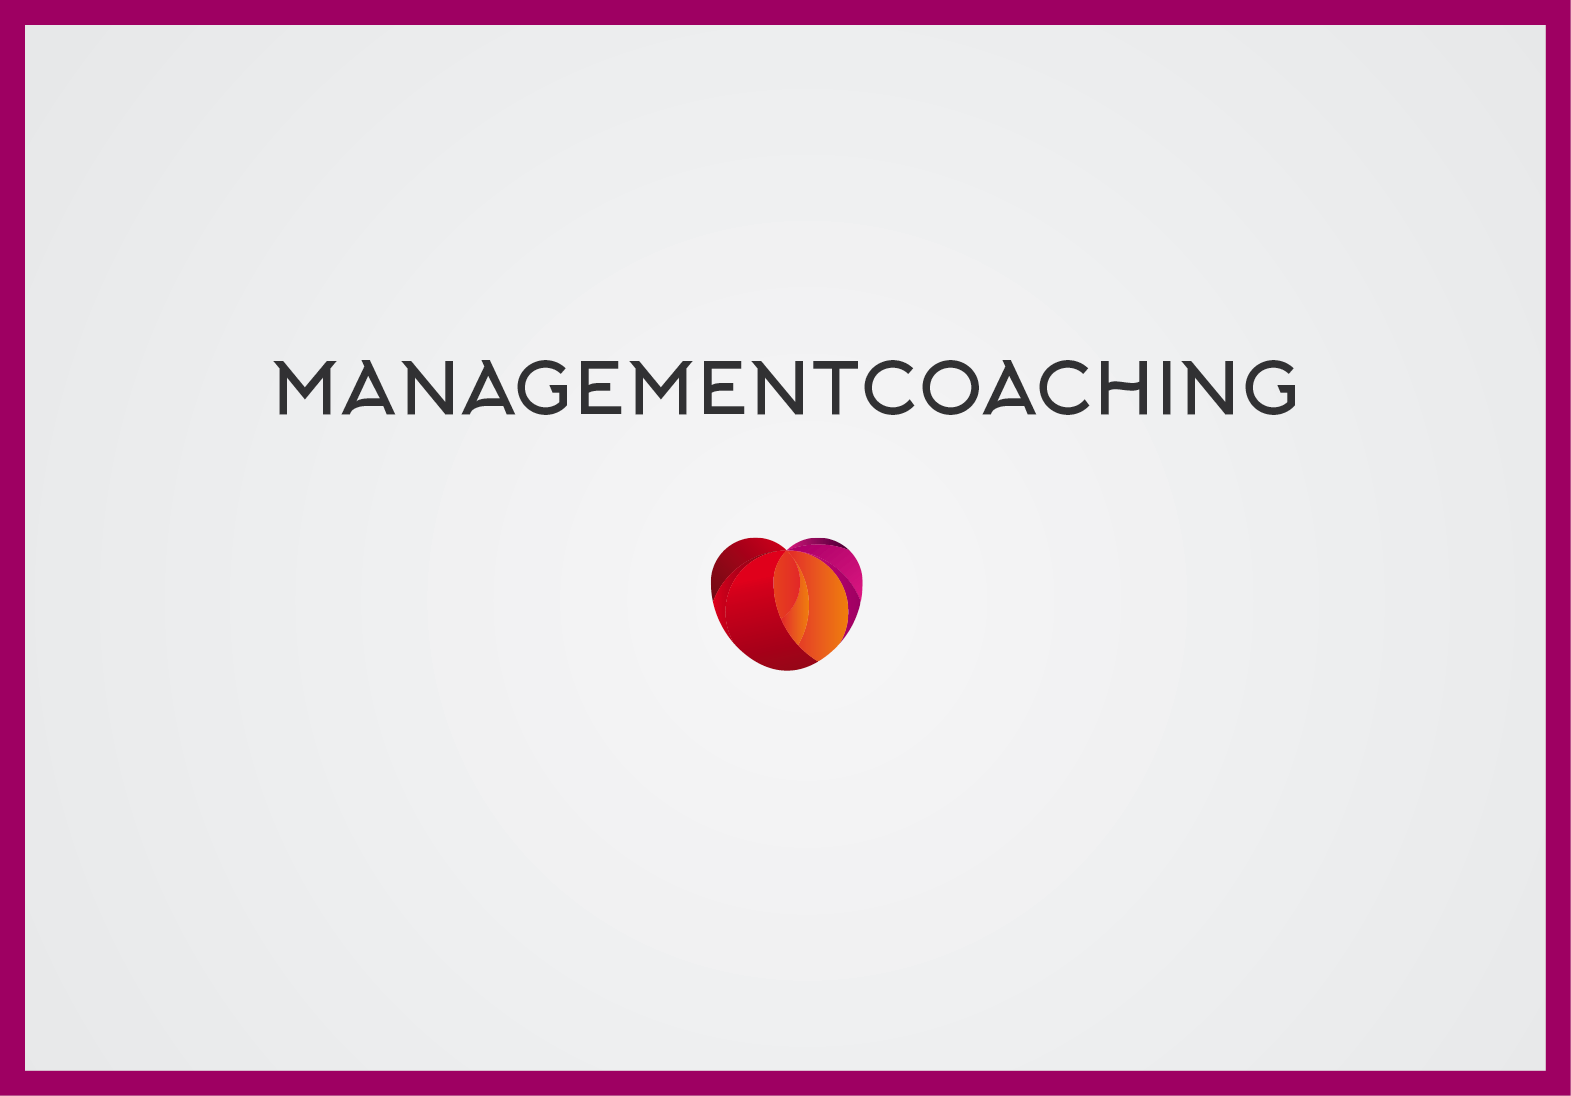 Managementcoaching